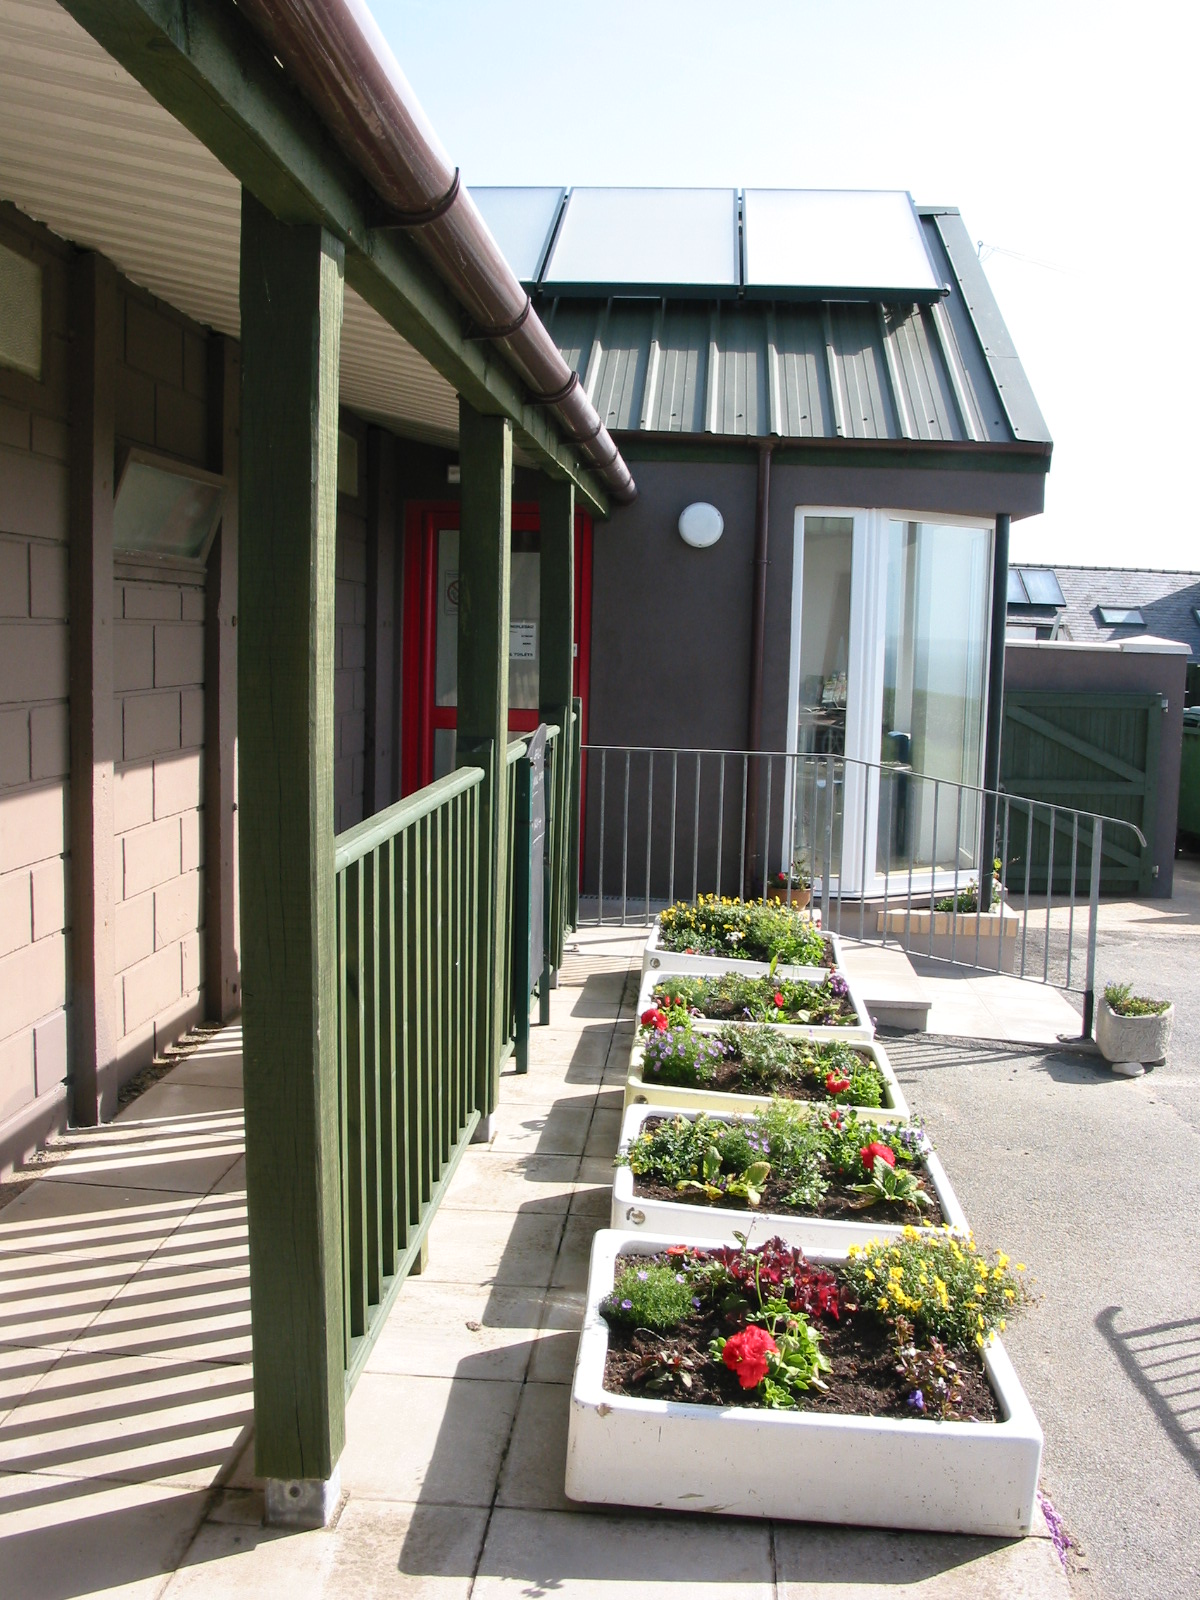 Solar panels and flower pots from reused shower basins